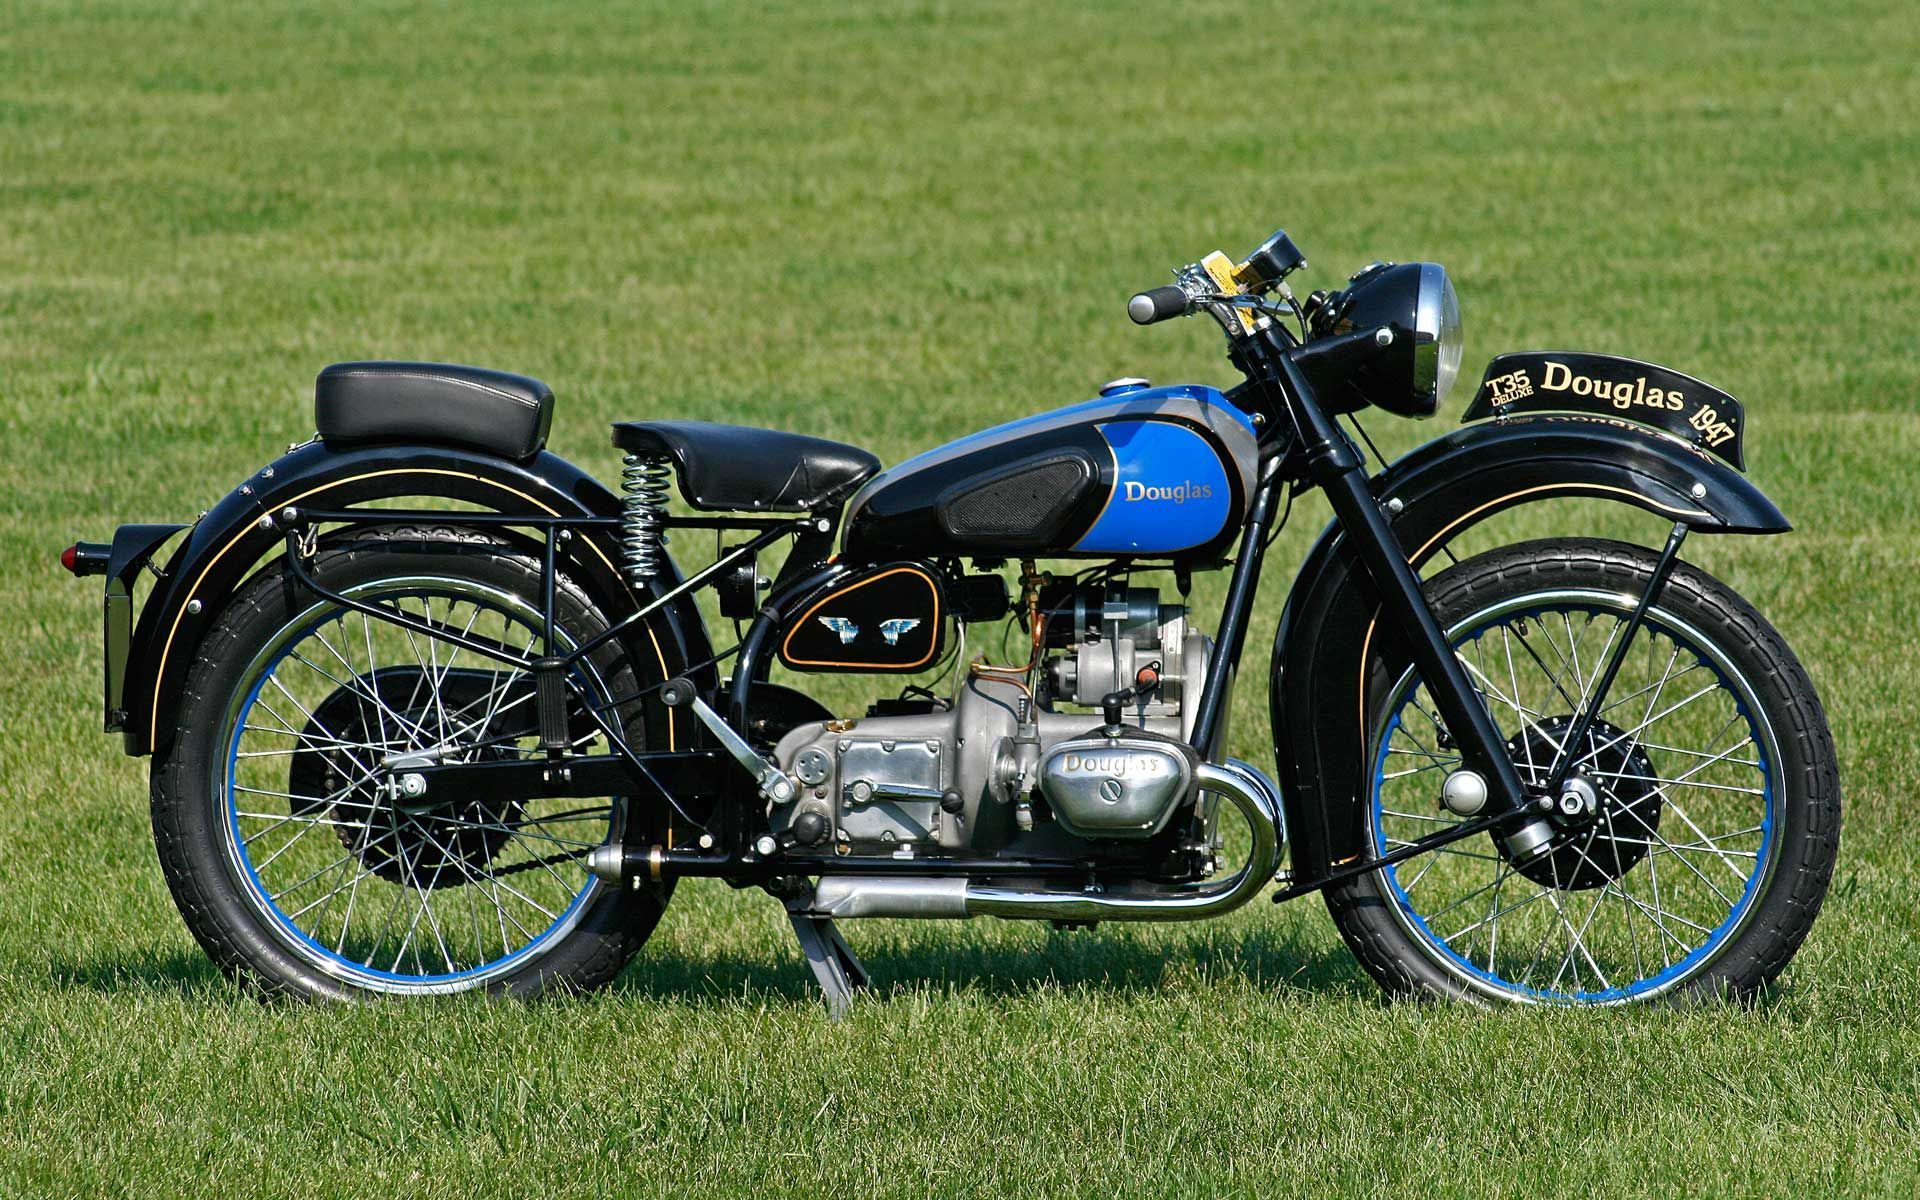 1947 Douglas T35 Deluxe A British Motorcycle Featured A Boxer Twin Engine And A Very Innovative Suspension System Motorrad